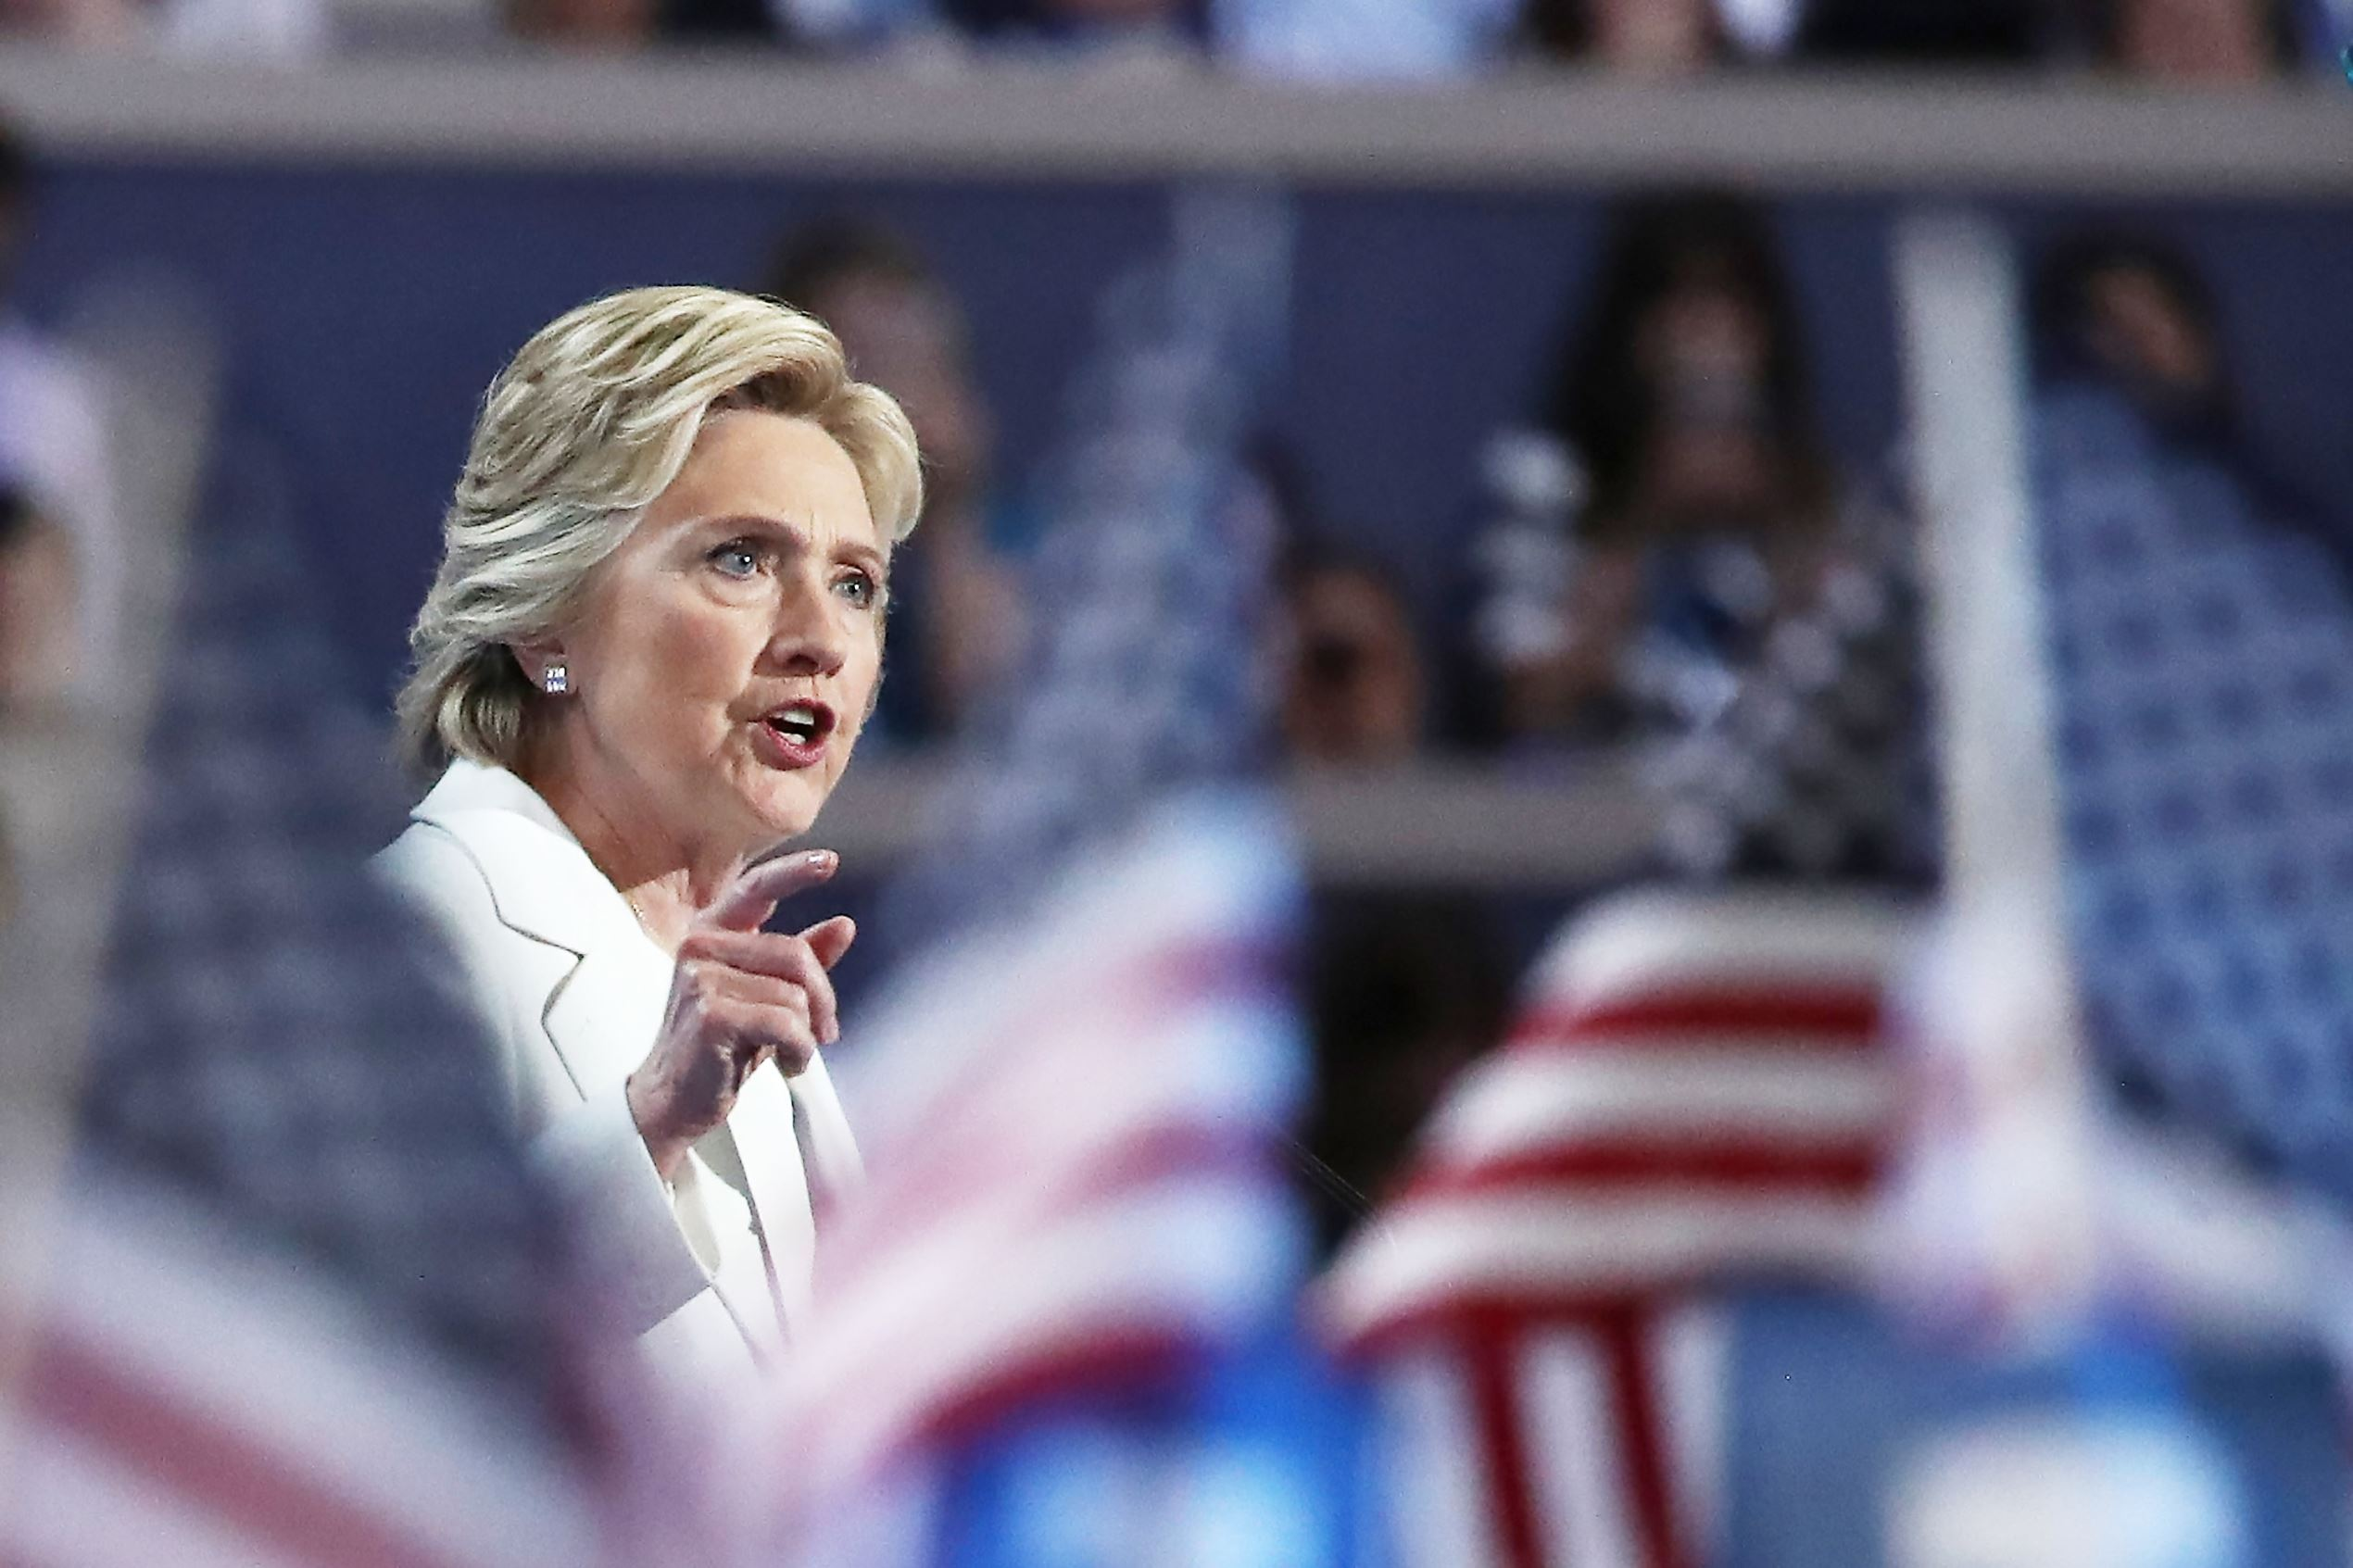 Democratic presidential candidate Hillary Clinton delivers remarks during the fourth day of the Democratic National Convention at the Wells Fargo Center, July 28, in Philadelphia, Penn.